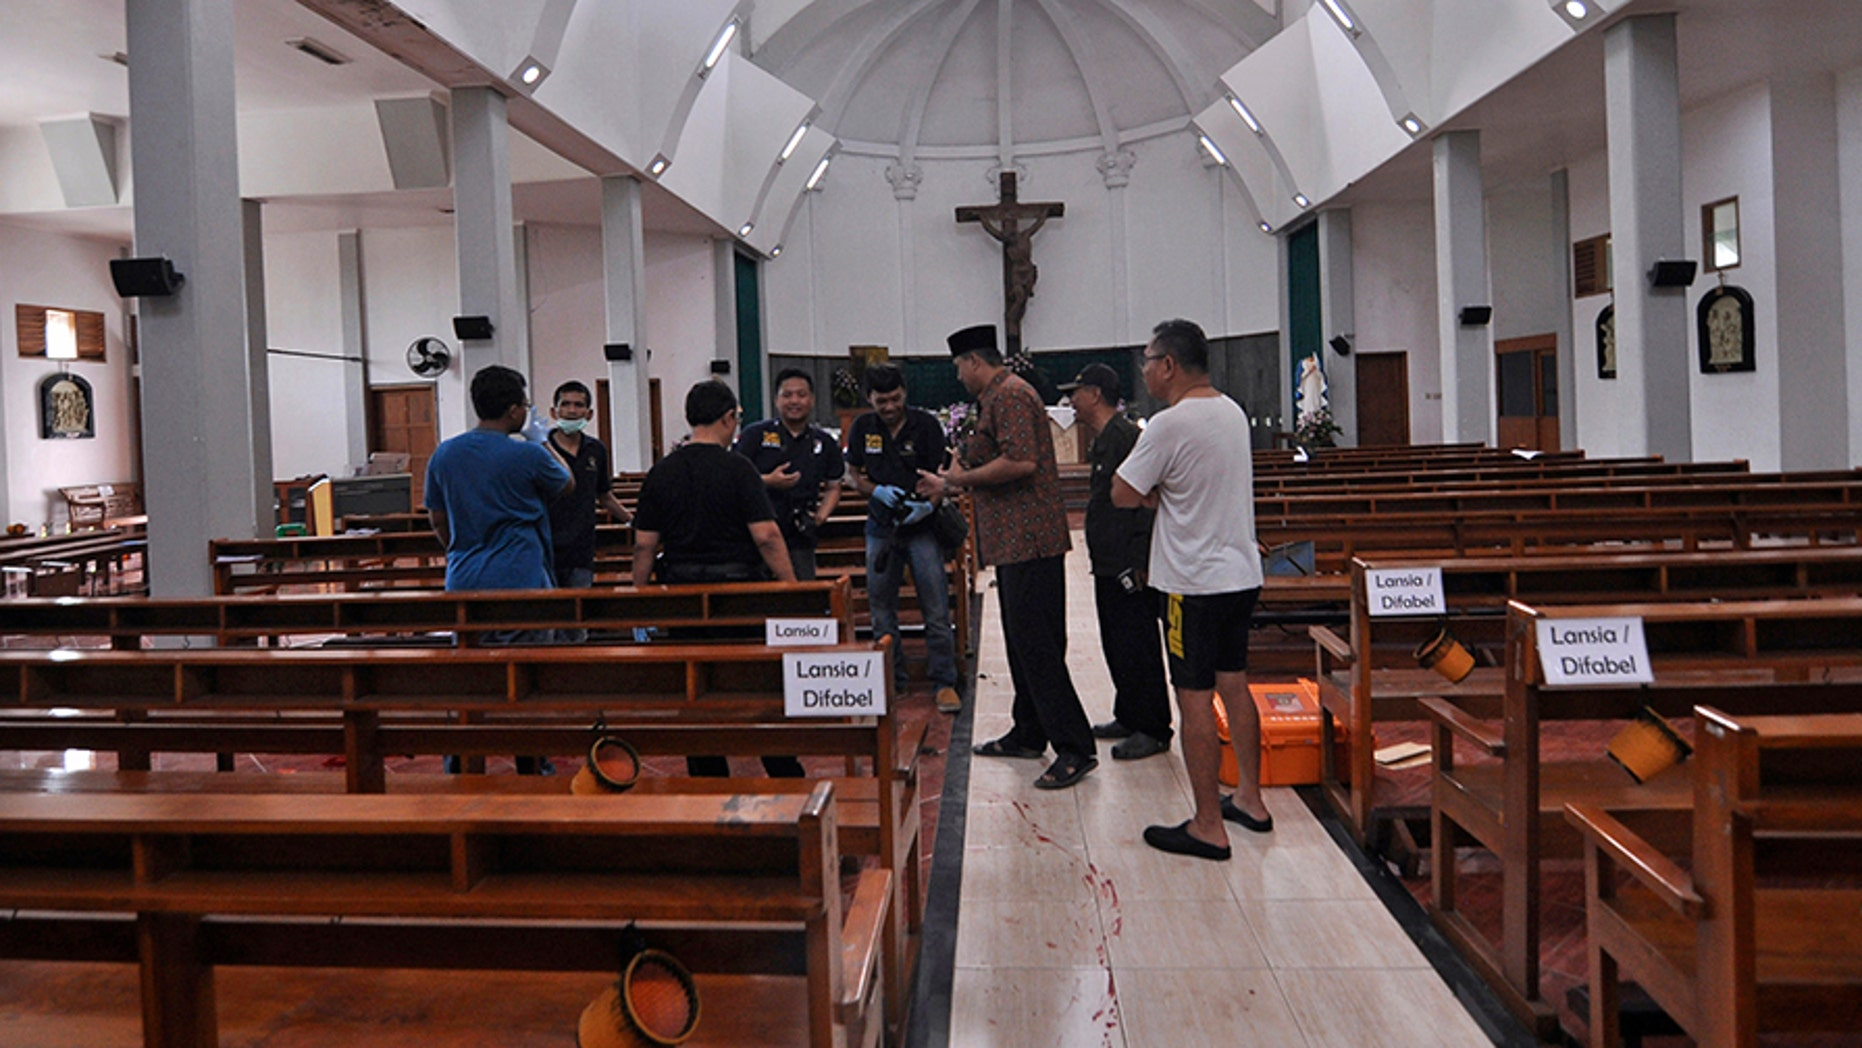 Police officers investigate inside St. Lidwina Church following an attack in Sleman, Yogyakarta province, Indonesia, Sunday, Feb. 11, 2018. Police shot a sword-wielding man who attack the church during a mass, injuring a number of people including a German priest. The reason for the attack Sunday morning was not immediately clear. (AP Photo/Slamet Riyadi)